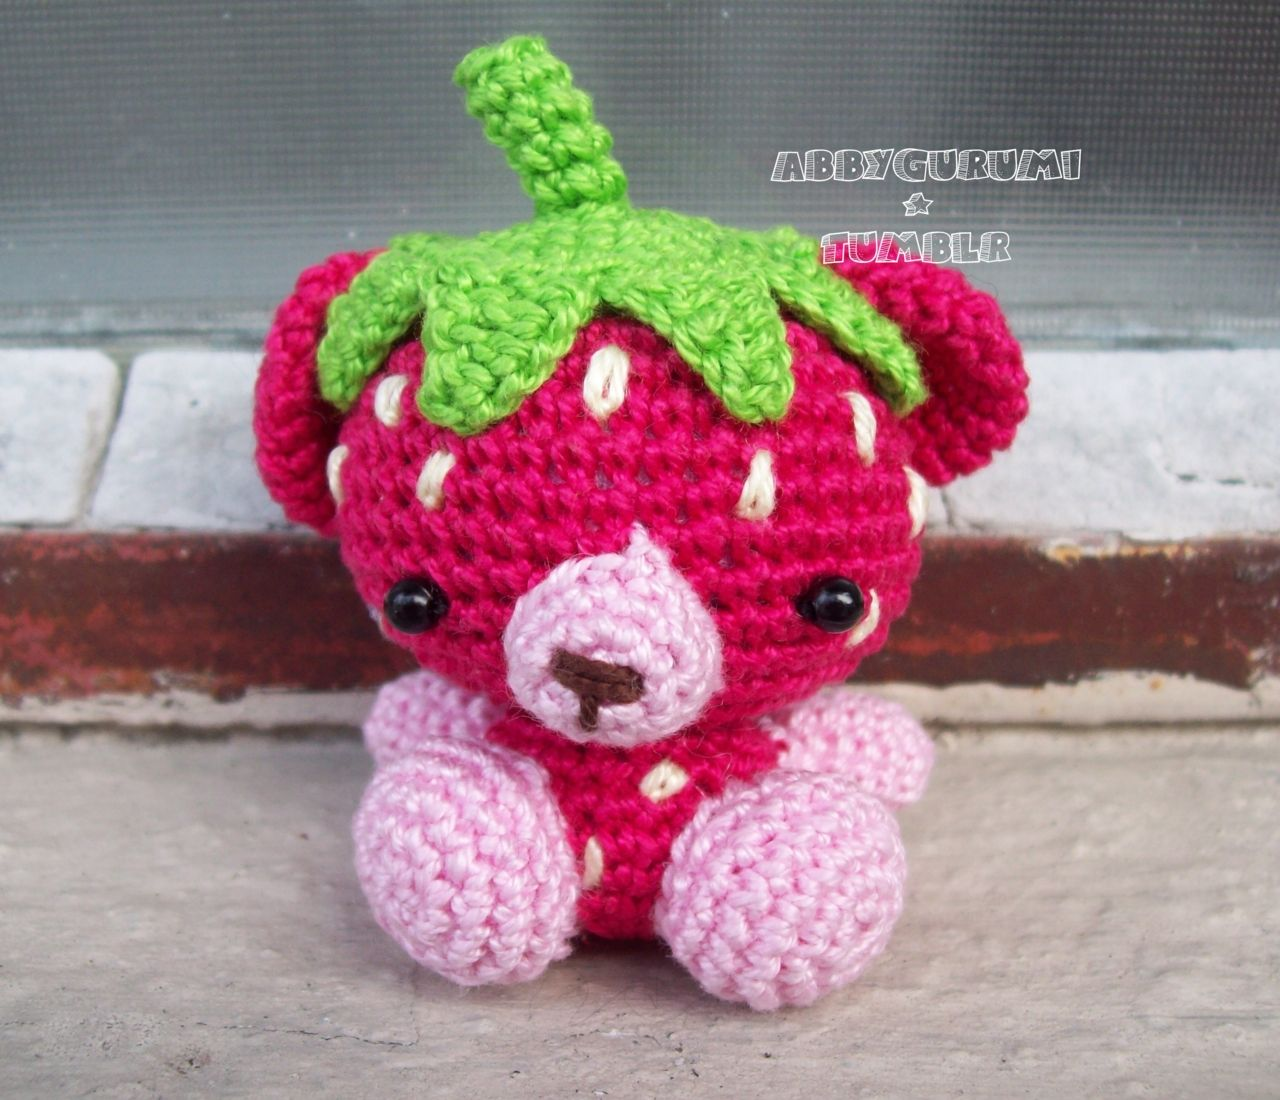 Strawberry bear just pic for now puts up patterns for her crochet dolls bankloansurffo Gallery